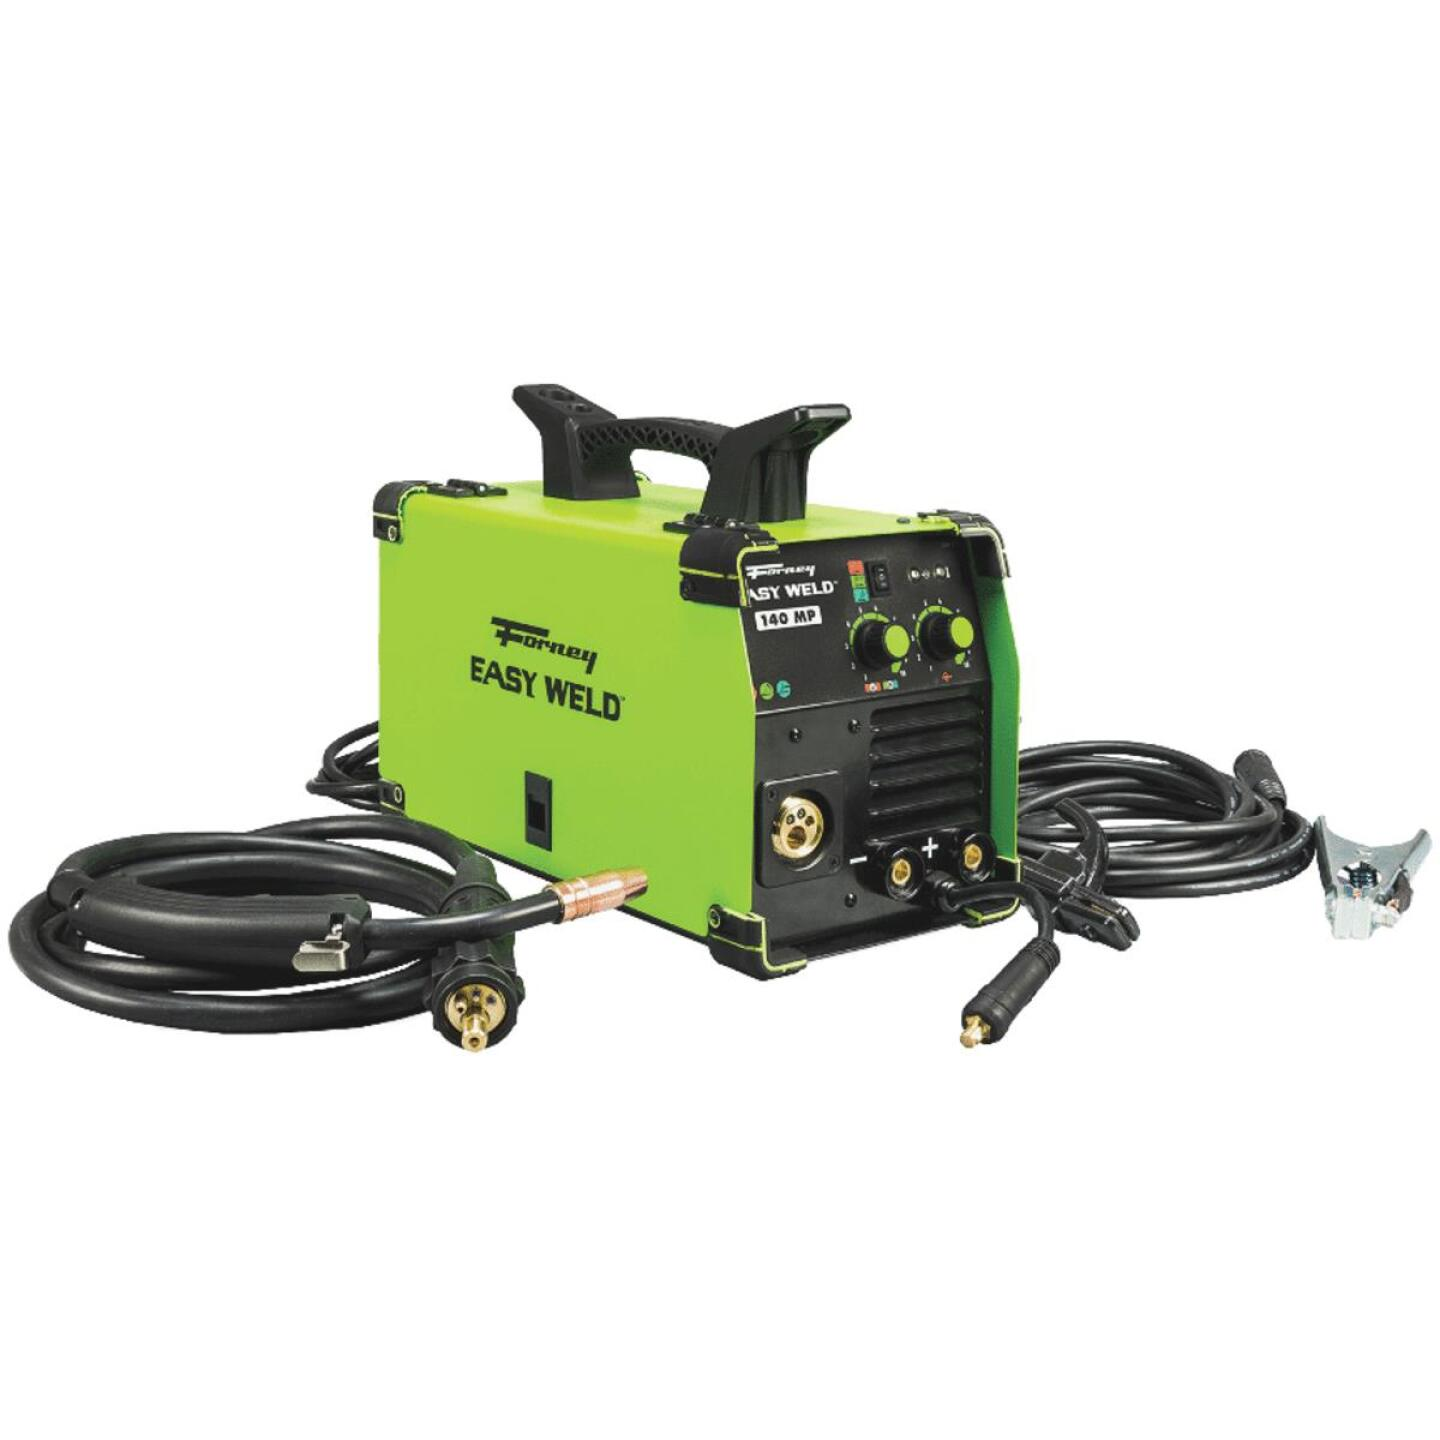 Forney Easy Weld 140 MP 120-Volt 140-Amp Multi-Process Welder (MIG/TIG/Arc) Image 1